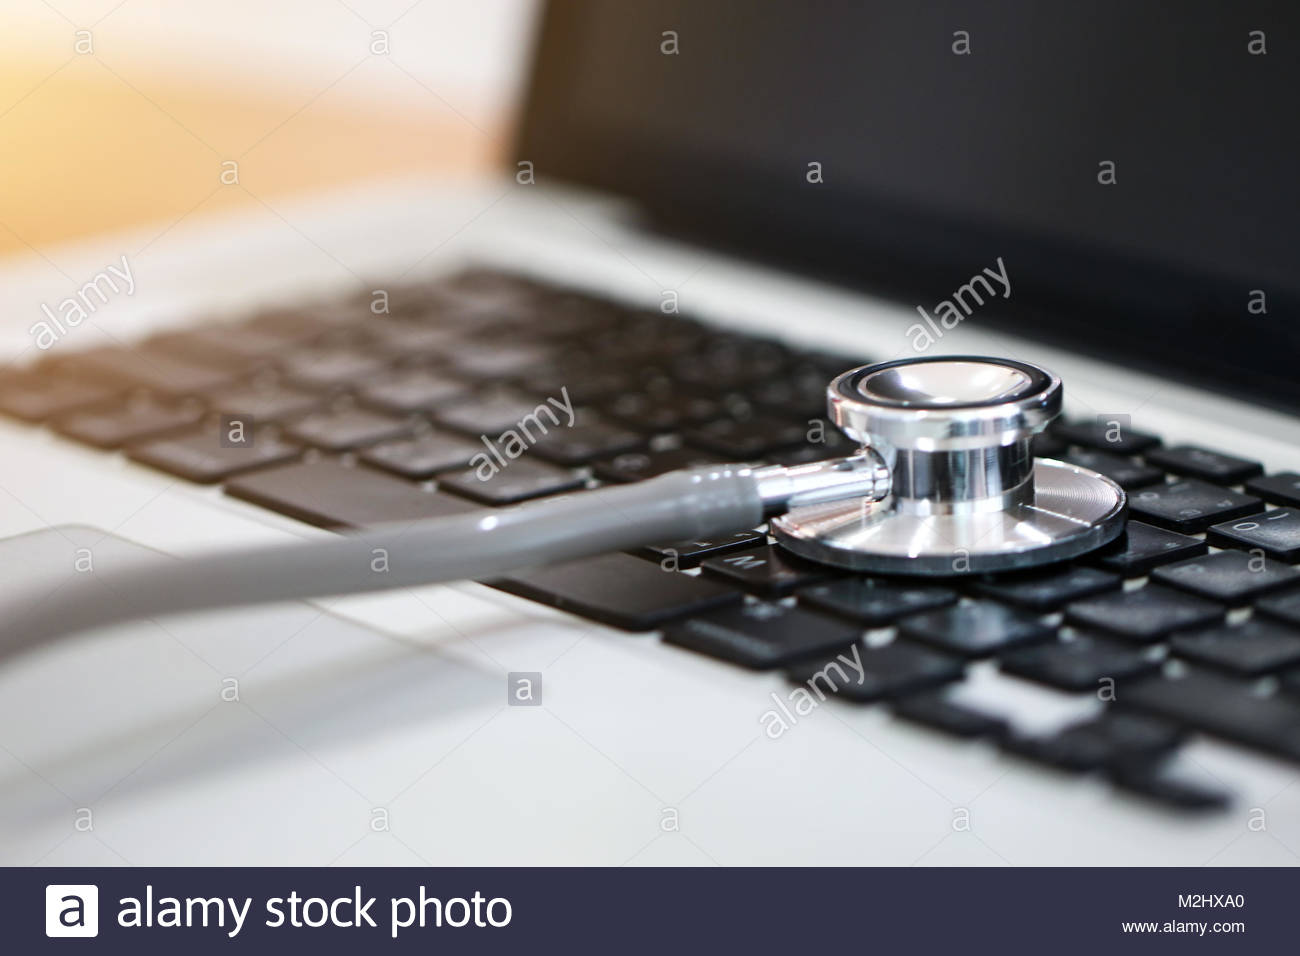 cost of healthcare - Stock Image